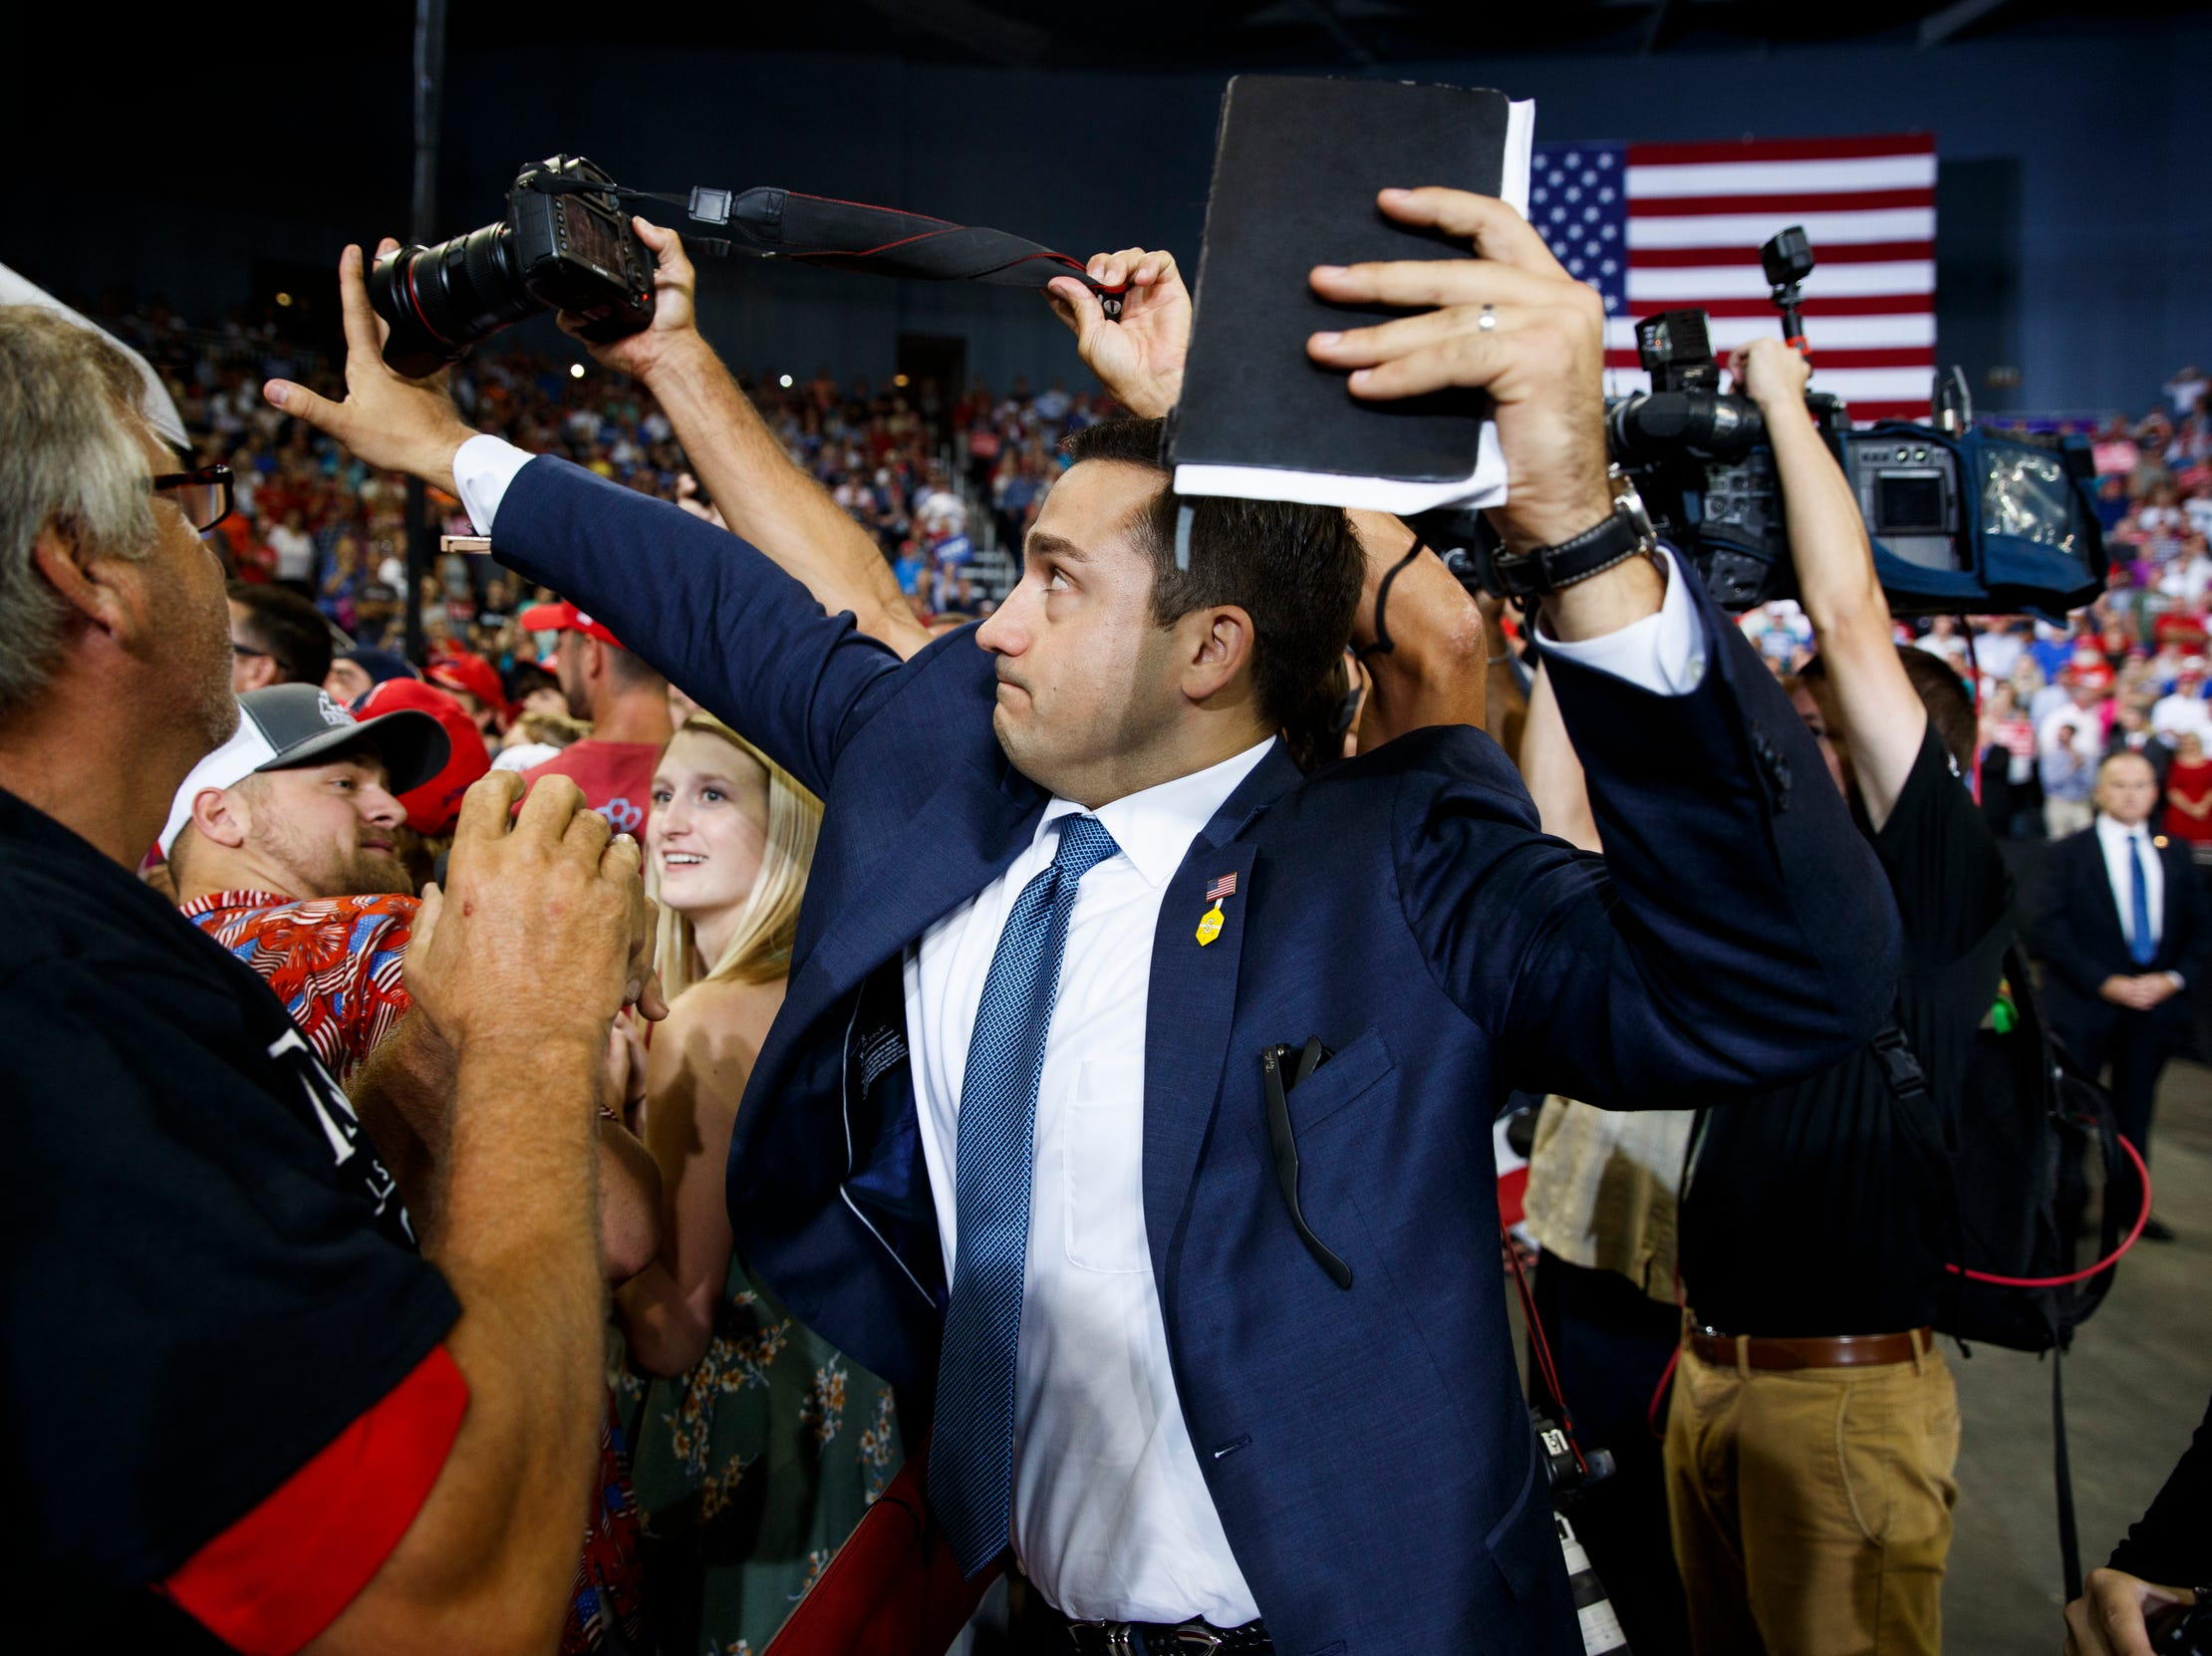 A volunteer member of the advance team for President Donald Trump blocks a camera as a photojournalist attempts to take a photo of a protester during a campaign rally in Evansville, Ind., on Aug. 30, 2018.